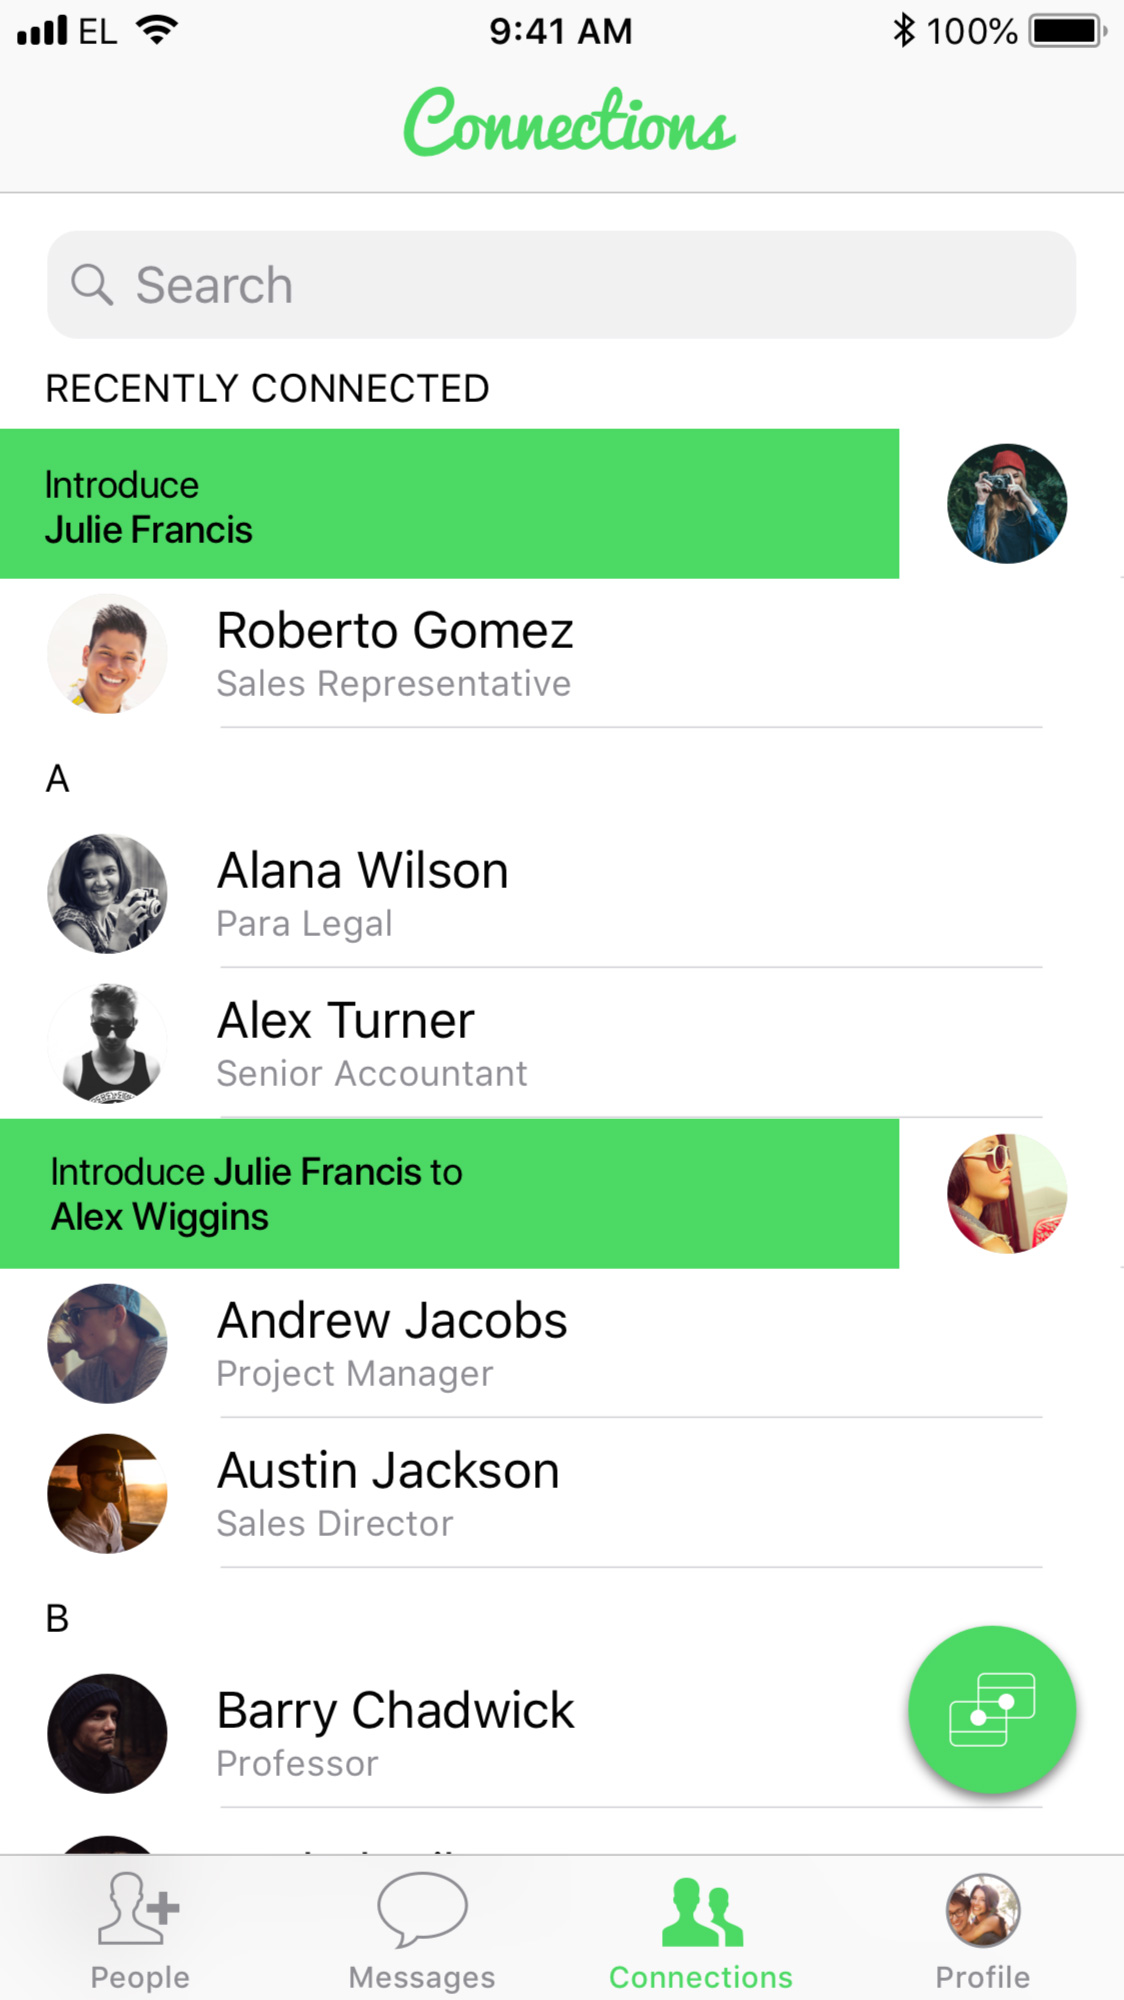 Introduce in Connections - Want to INTRODUCE others you've connected to? Just swipe right in your Connections.Learn more ➝